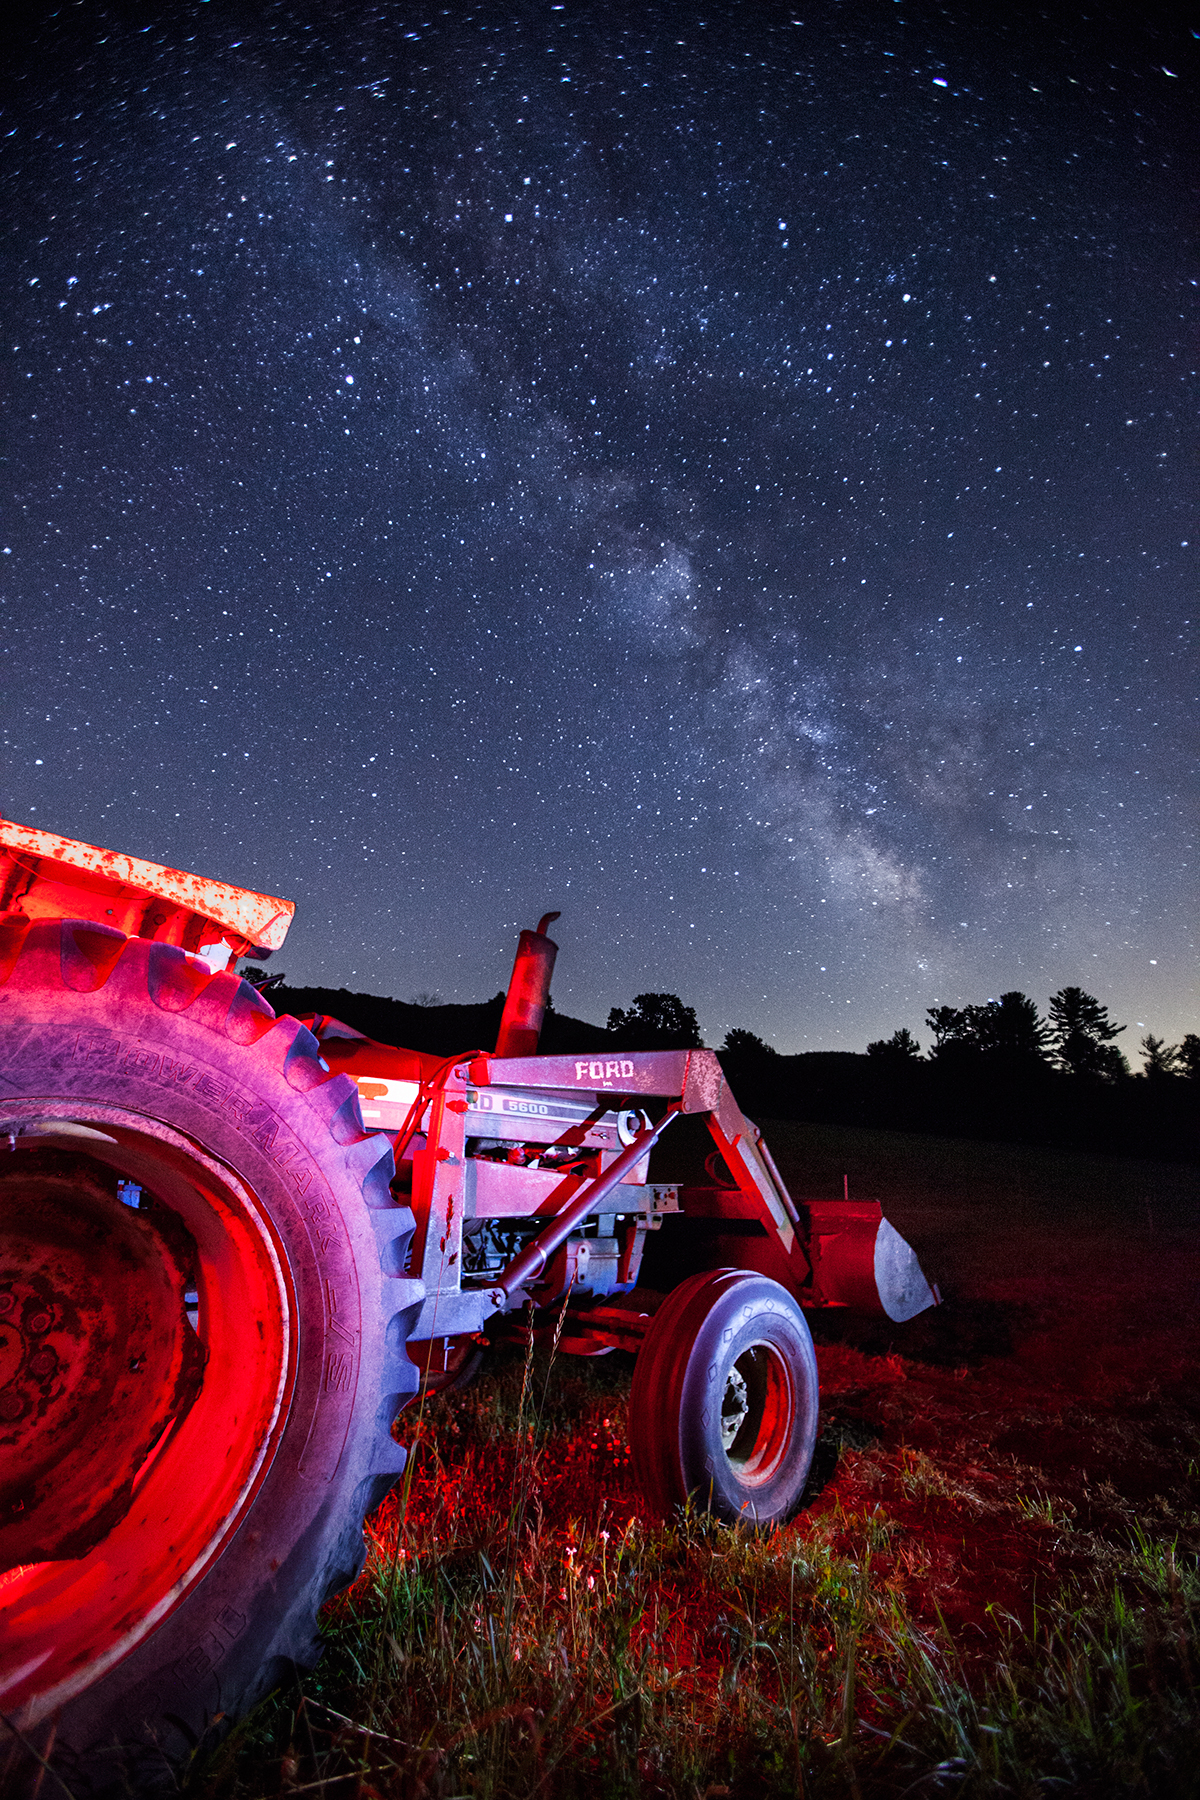 MILKY WAY-STARLIGHT-AND-TRACTOR-AT-STONWALL-DAIRY_MILKYWAY_0©-JONATHAN-R.-BECKERMAN-PHOTOGRAPHY-62916.jpg